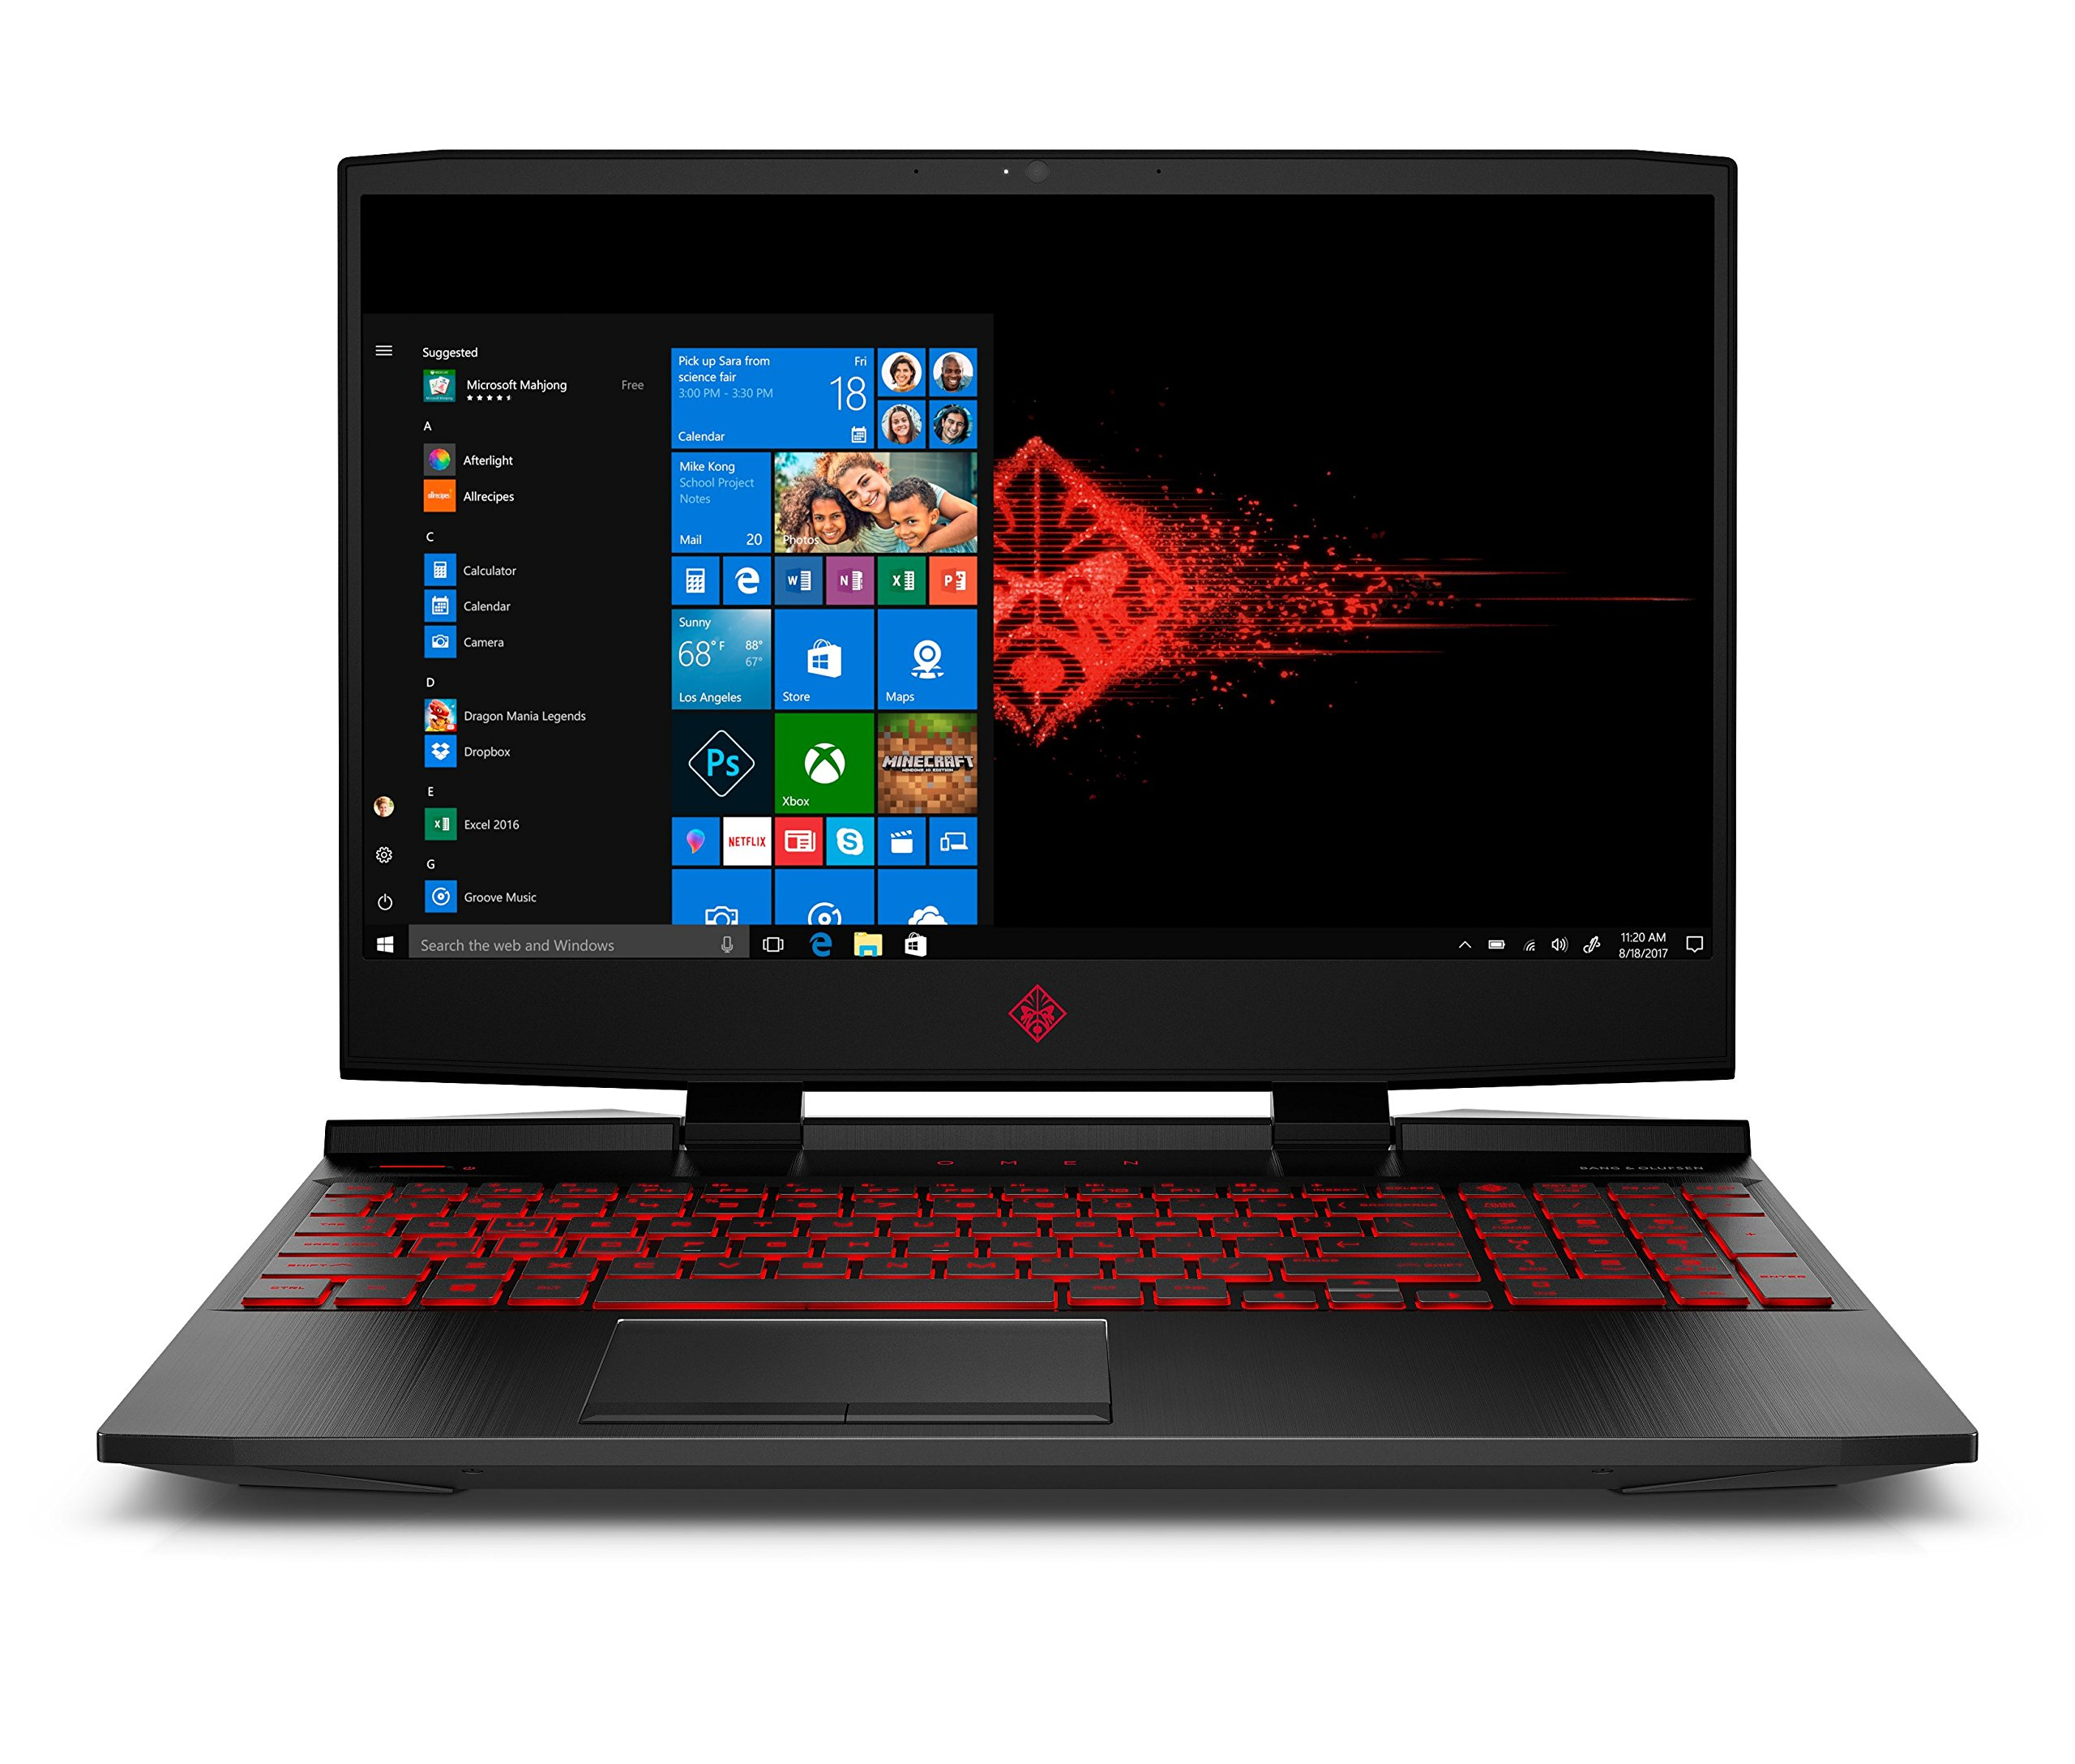 OMEN by HP 15.6-inch Gaming Laptop, i5-8300H Processor, GeForce GTX 1050Ti 4GB, FHD IPS Thin Display, 12GB 2666MHz RAM, 1TB HDD & 128GB PCIE SSD, Windows 10 (15-dc0010nr, Black), Metal 1